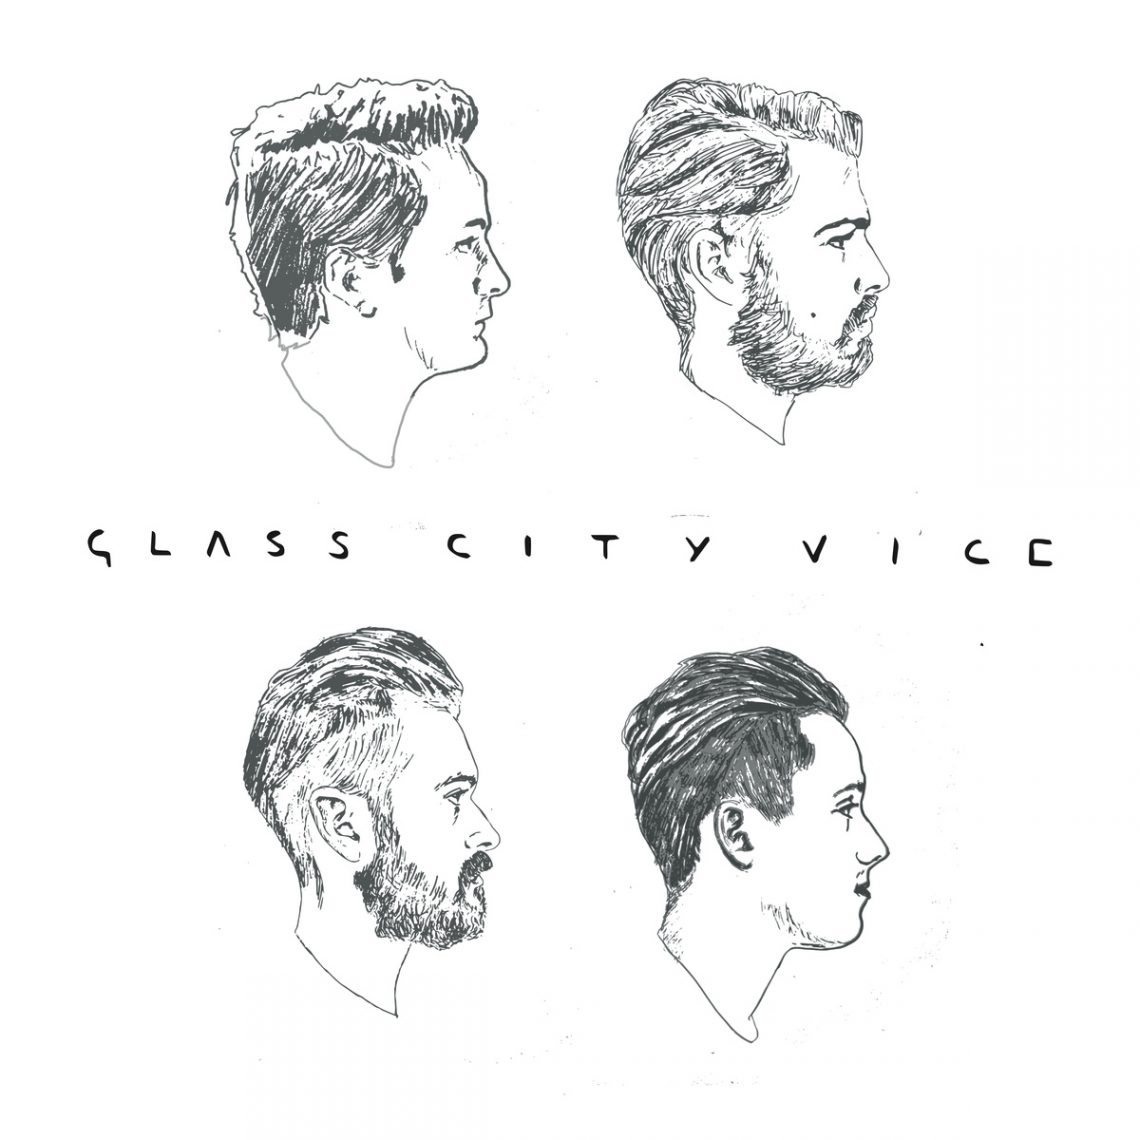 GLASS CITY VICE's latest single 'Landslide' premiered by Music Week